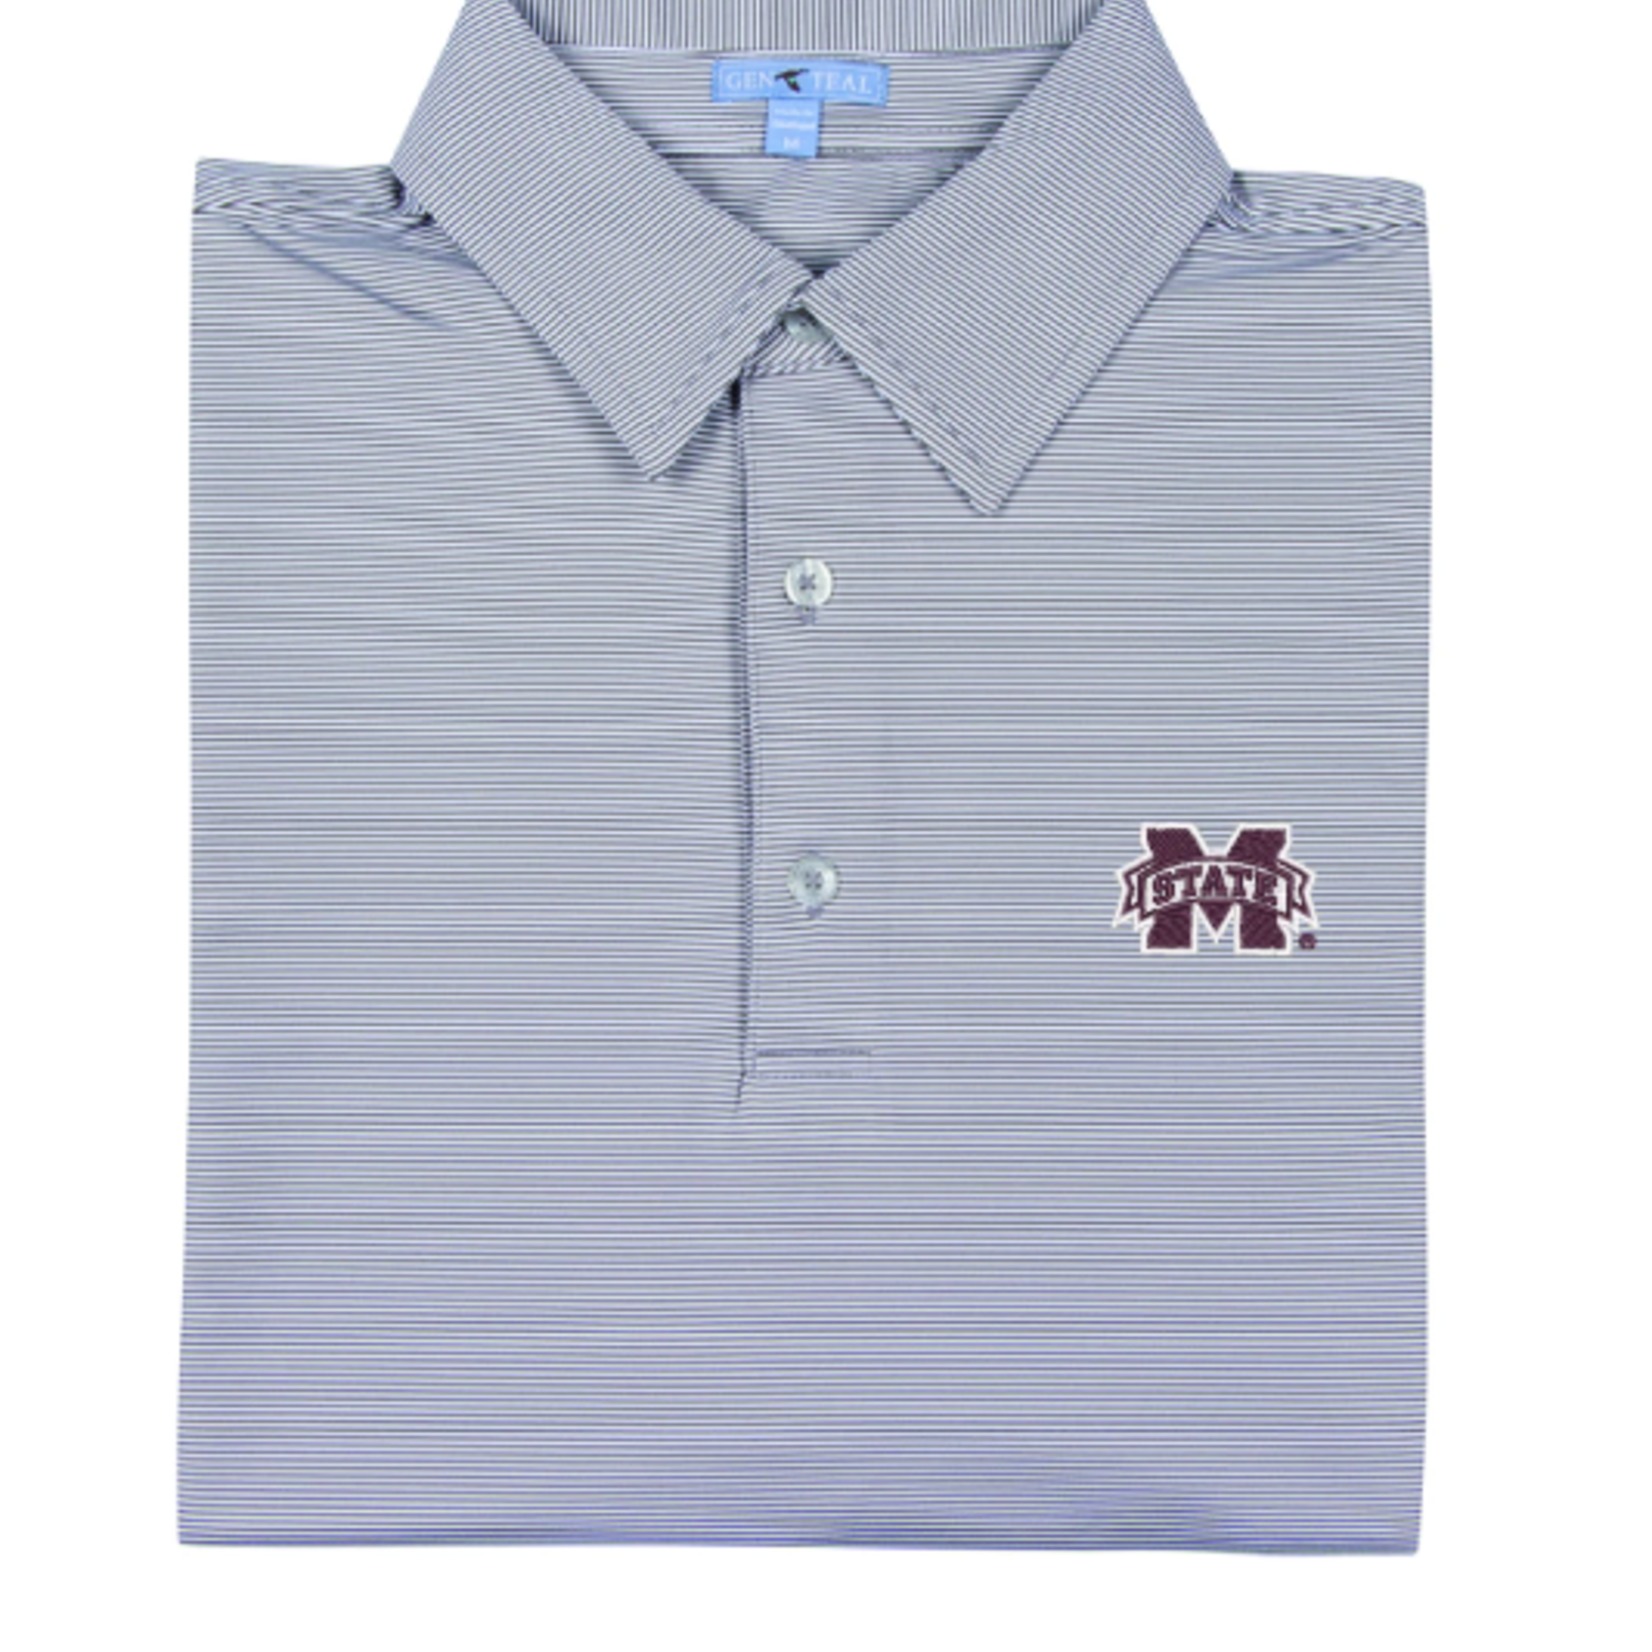 GenTeal Apparel Mississippi State Charcoal